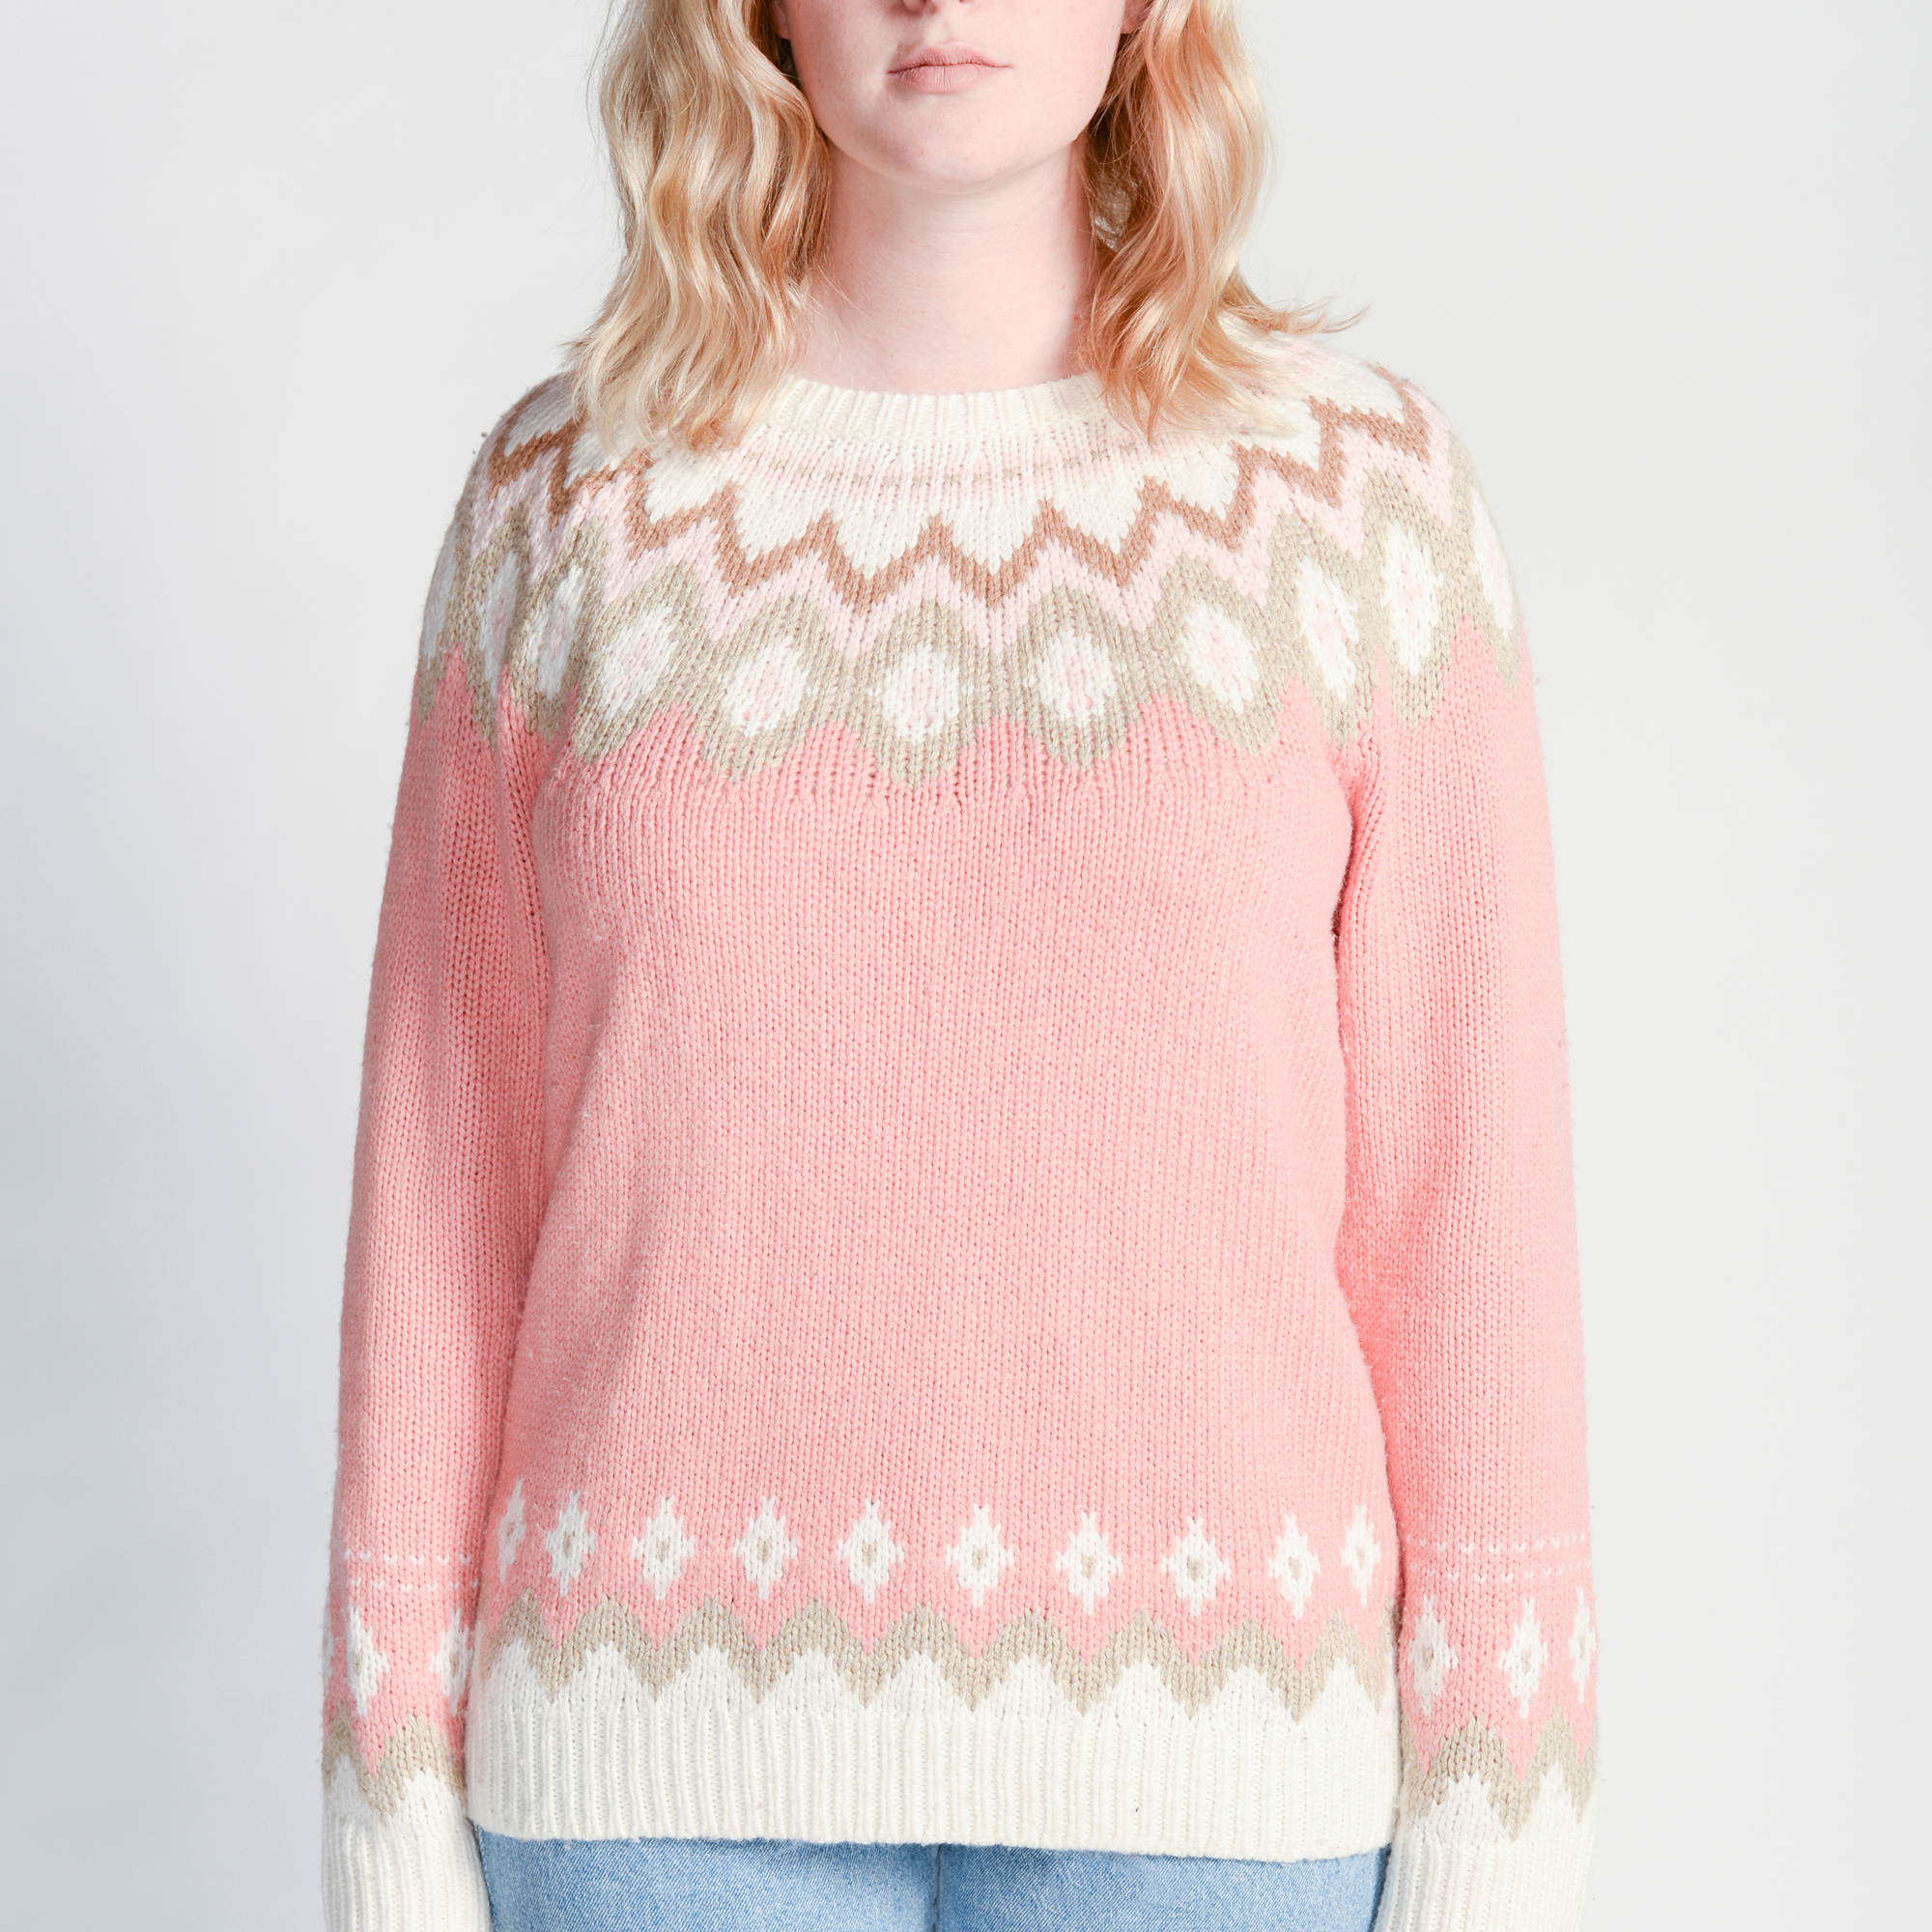 allsweaters_0004_layer-4